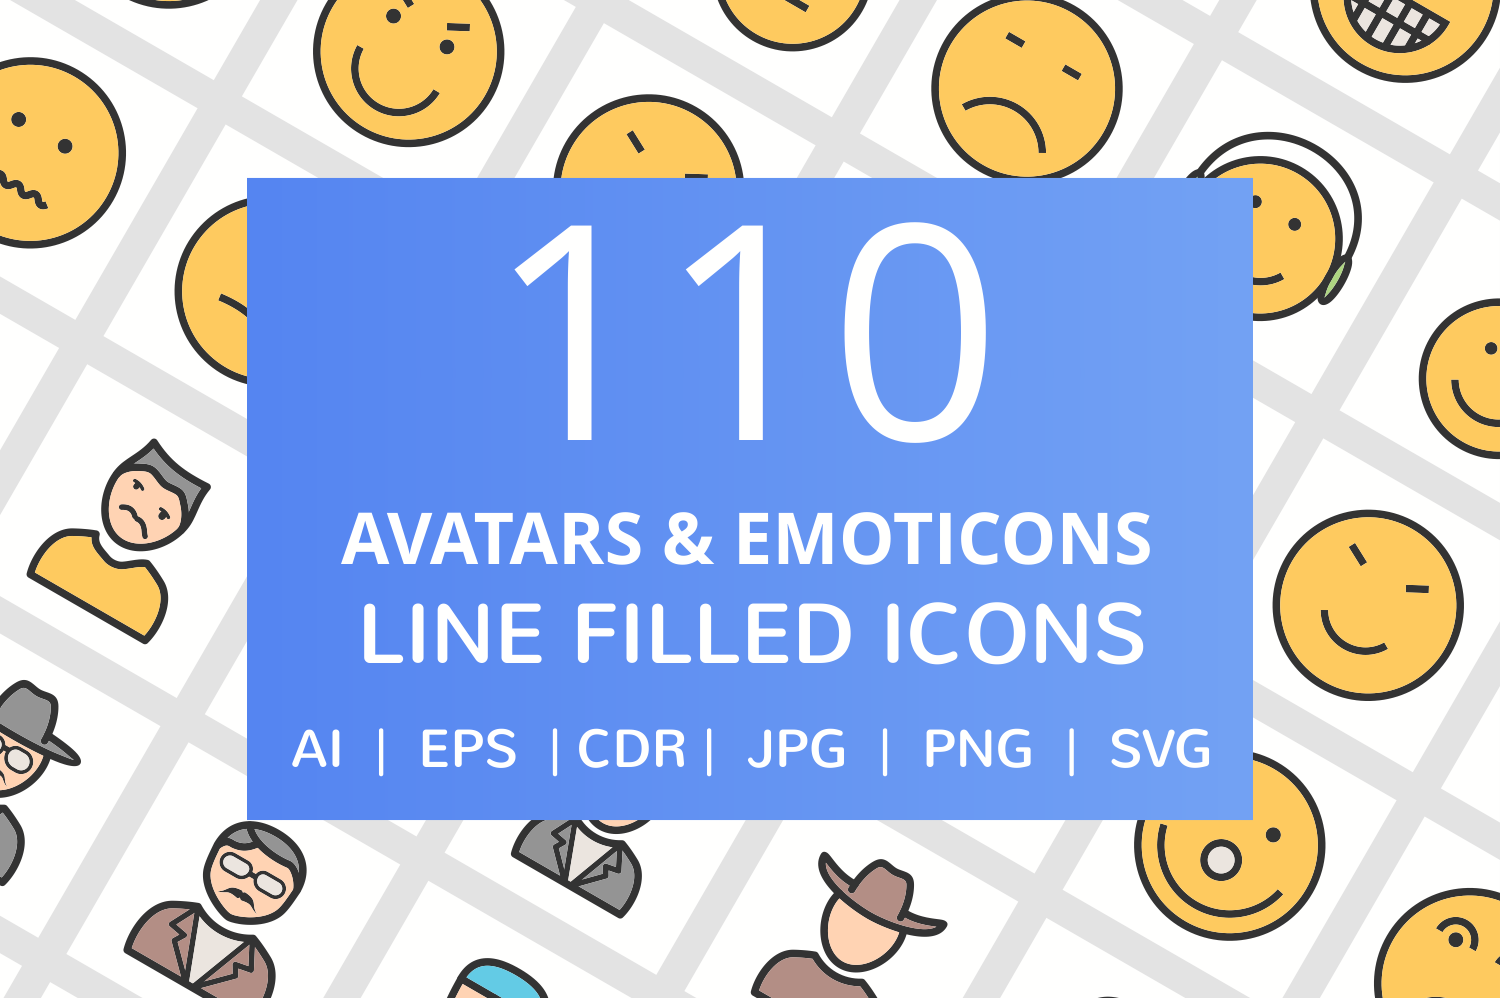 110 Avatars & Emoticons Filled Line Icons example image 1